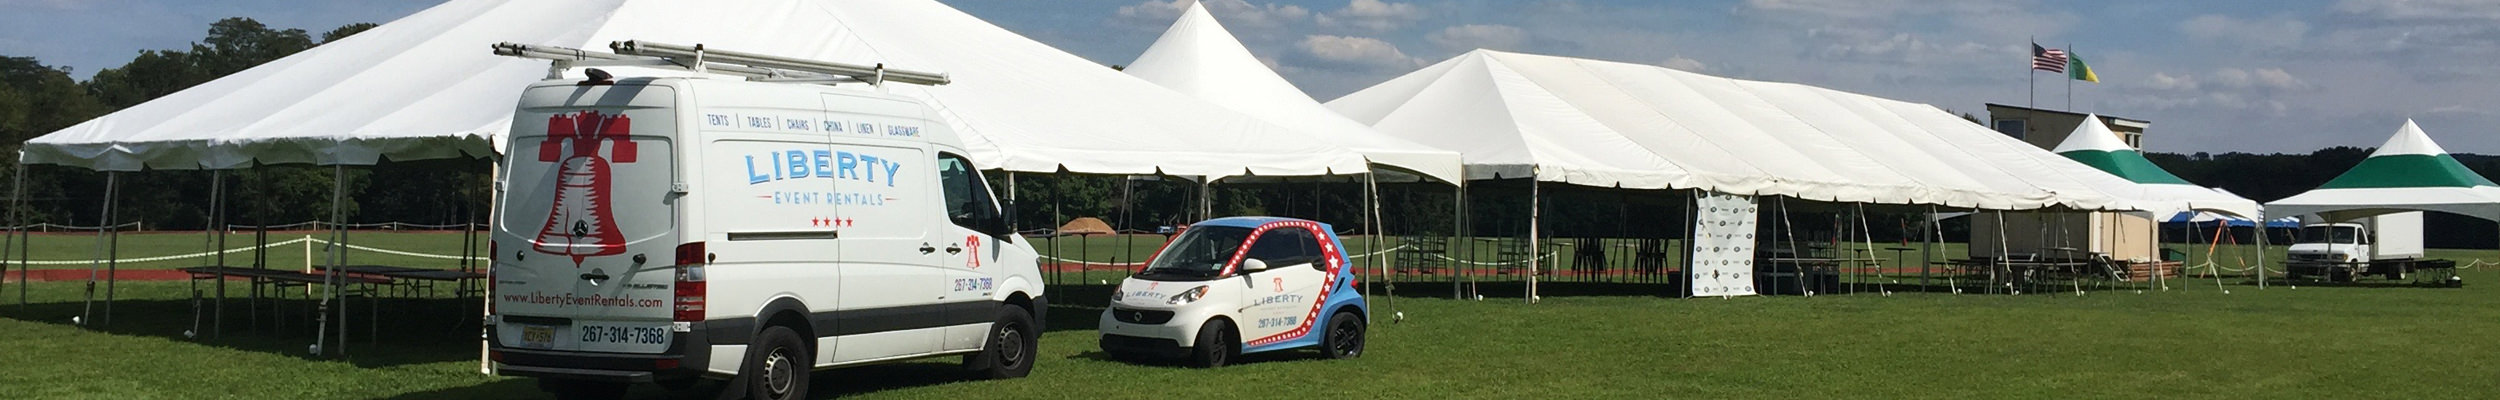 Polo Event - Liberty Event Rentals